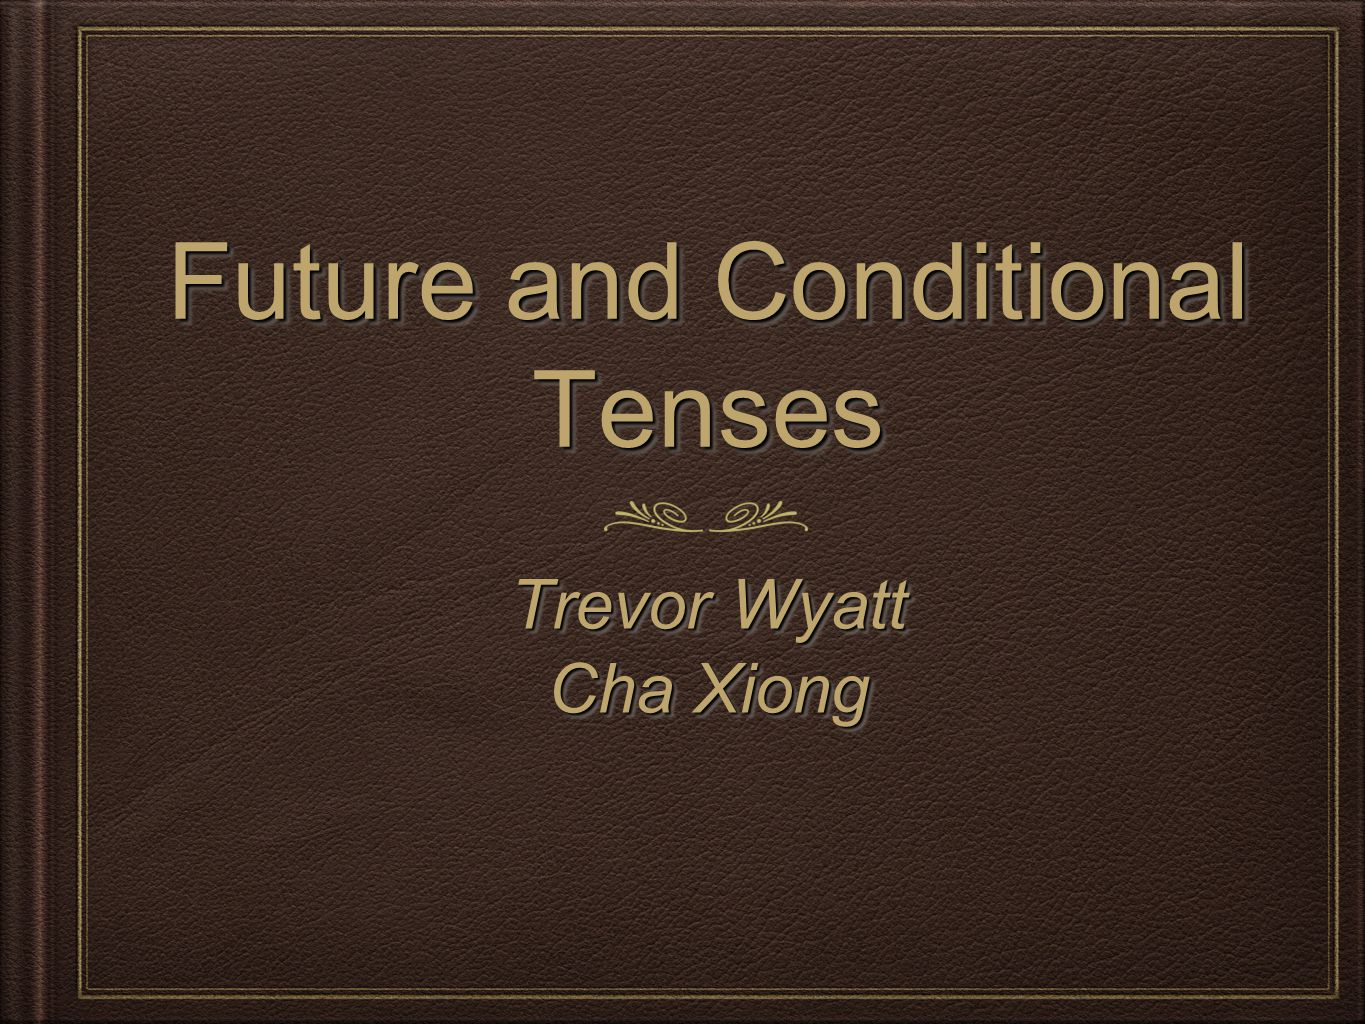 What is the future tense.The future tense is the action that will happen.